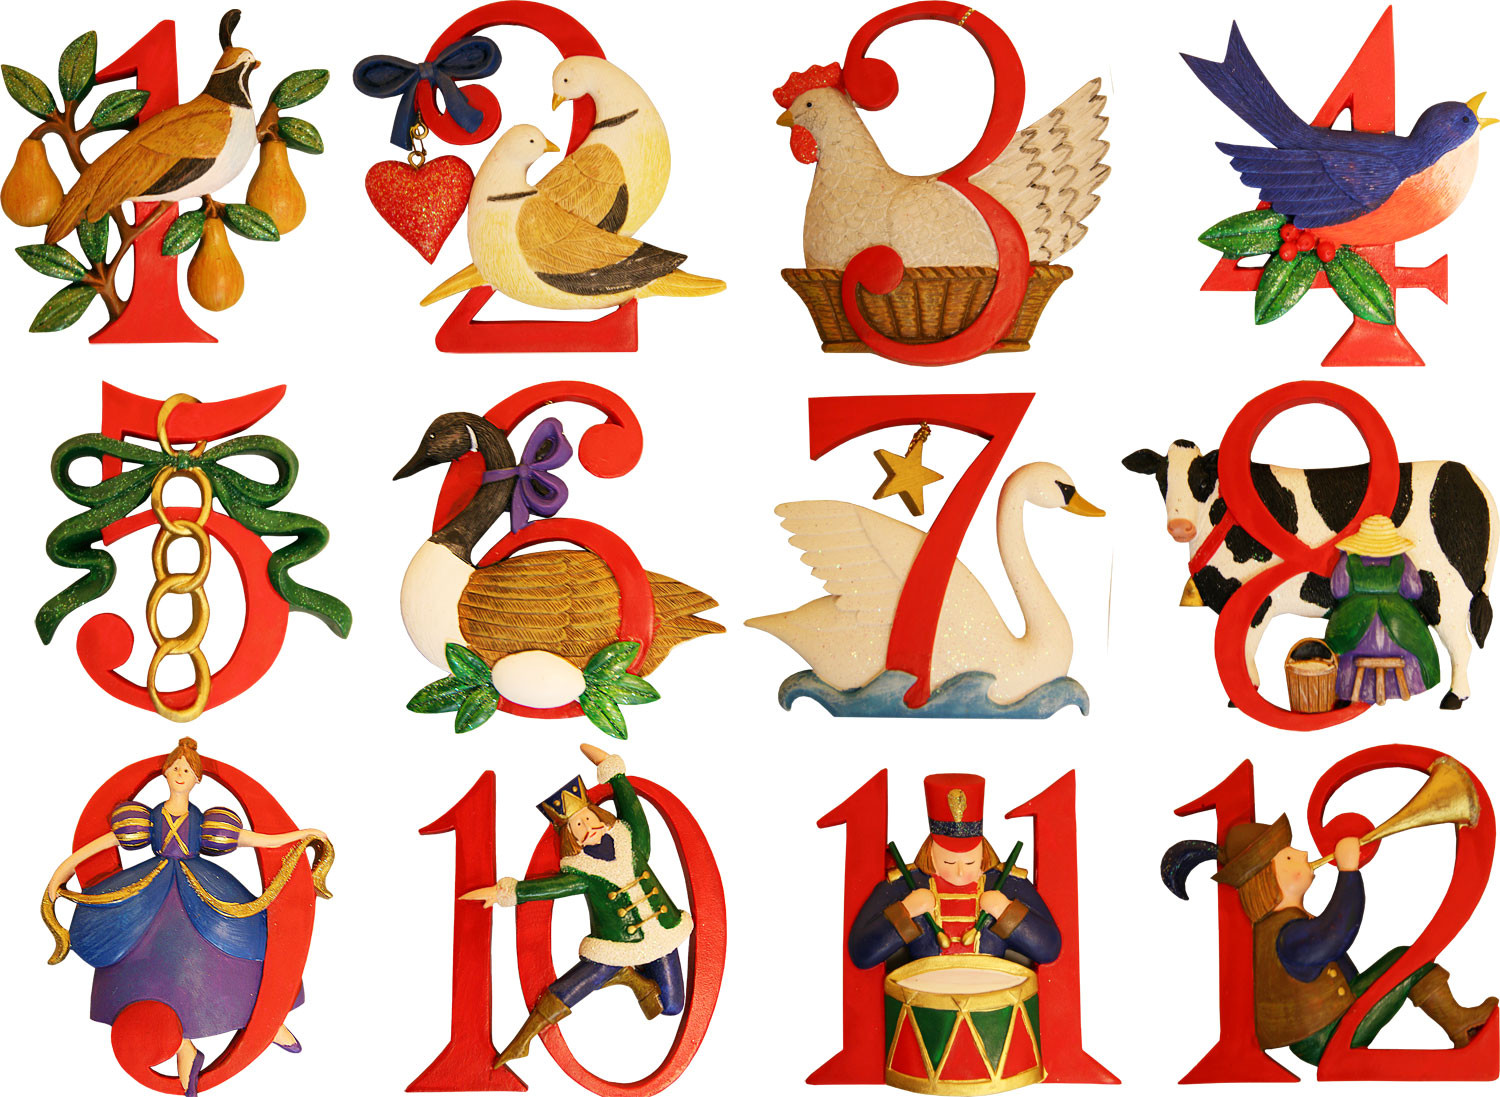 contrary to conventional wisdom the 12 days of christmas are not the 12 days before christmas but the 12 days after running from december 25th to january - 12 Days Of Christmas Origin